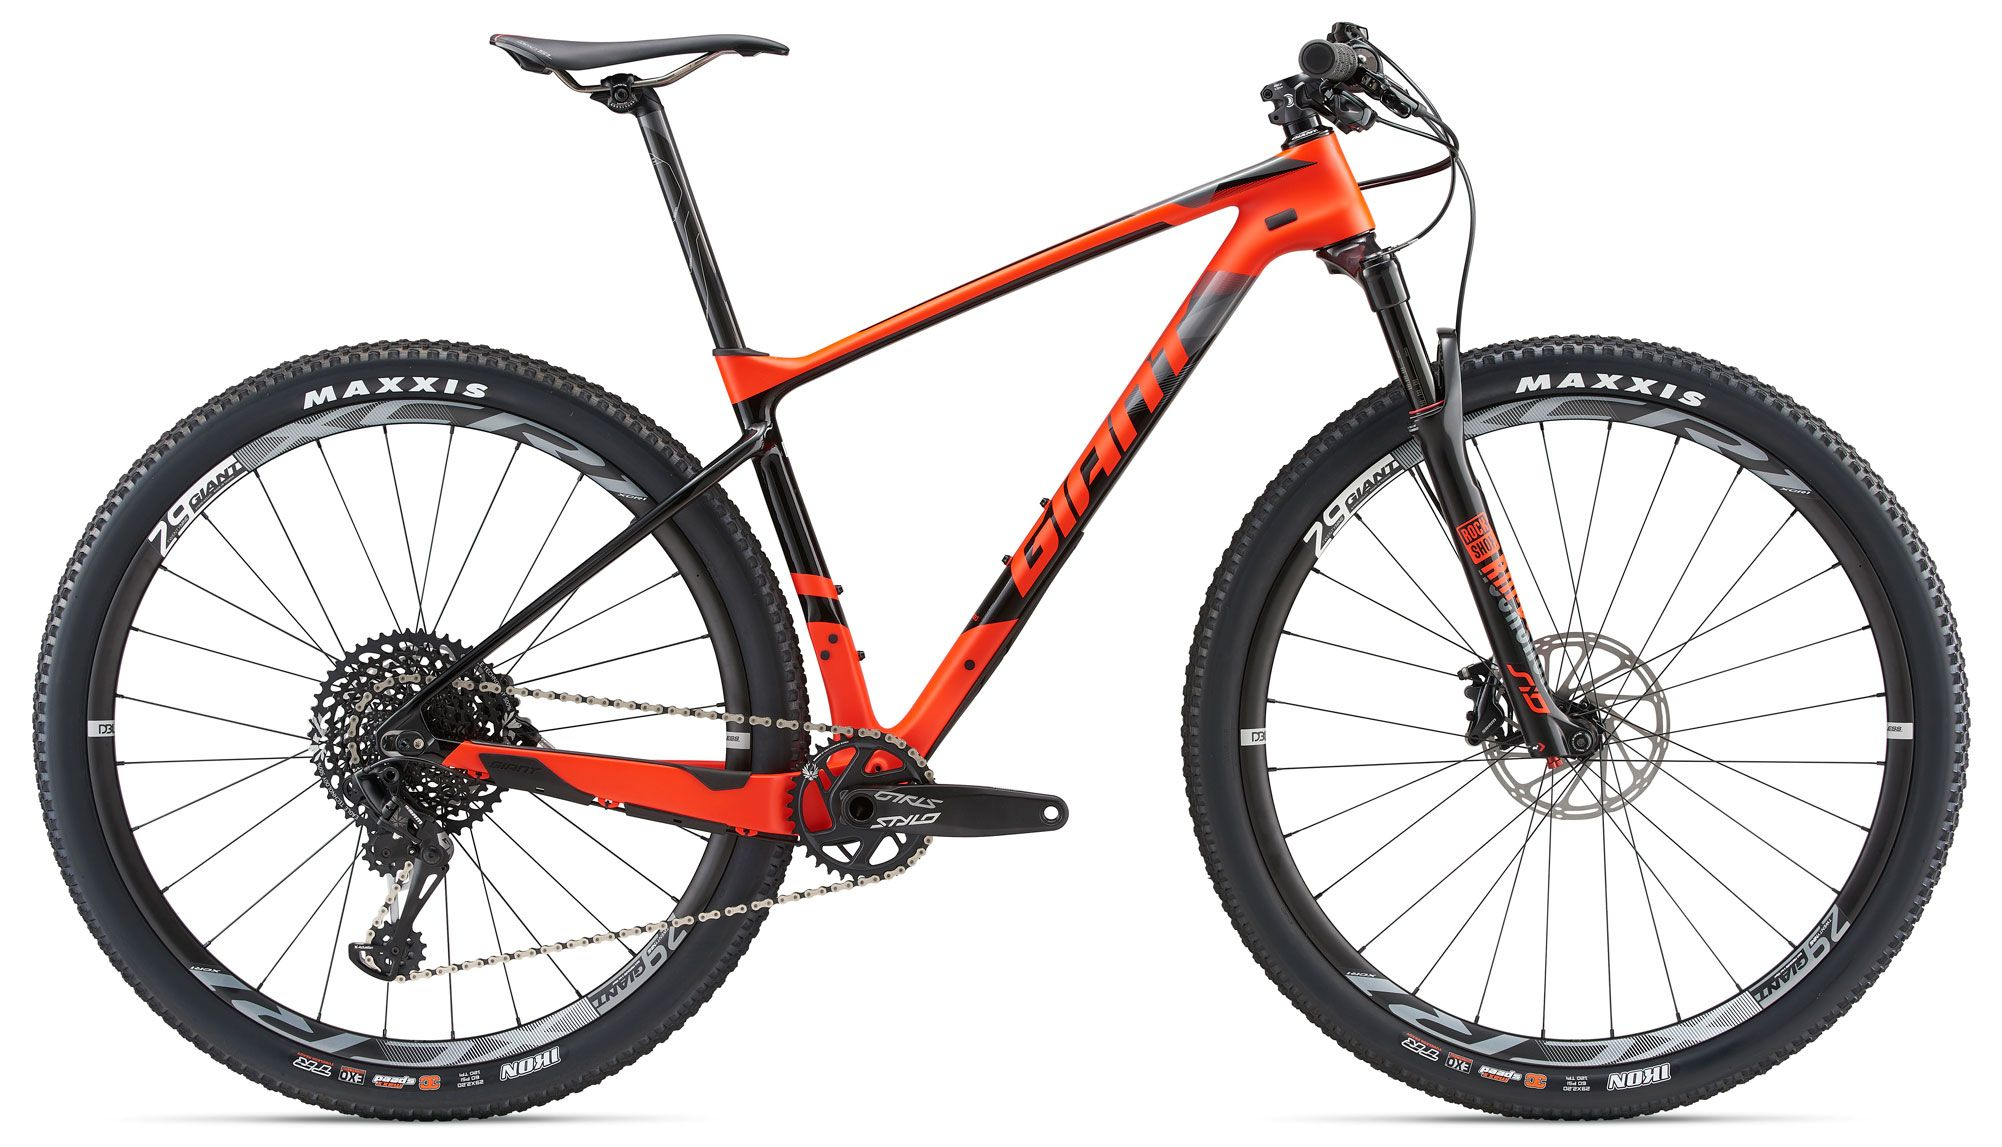 Велосипед Giant XTC Advanced 29er 1 2018 велосипед giant trinity advanced pro 1 2016 page 8